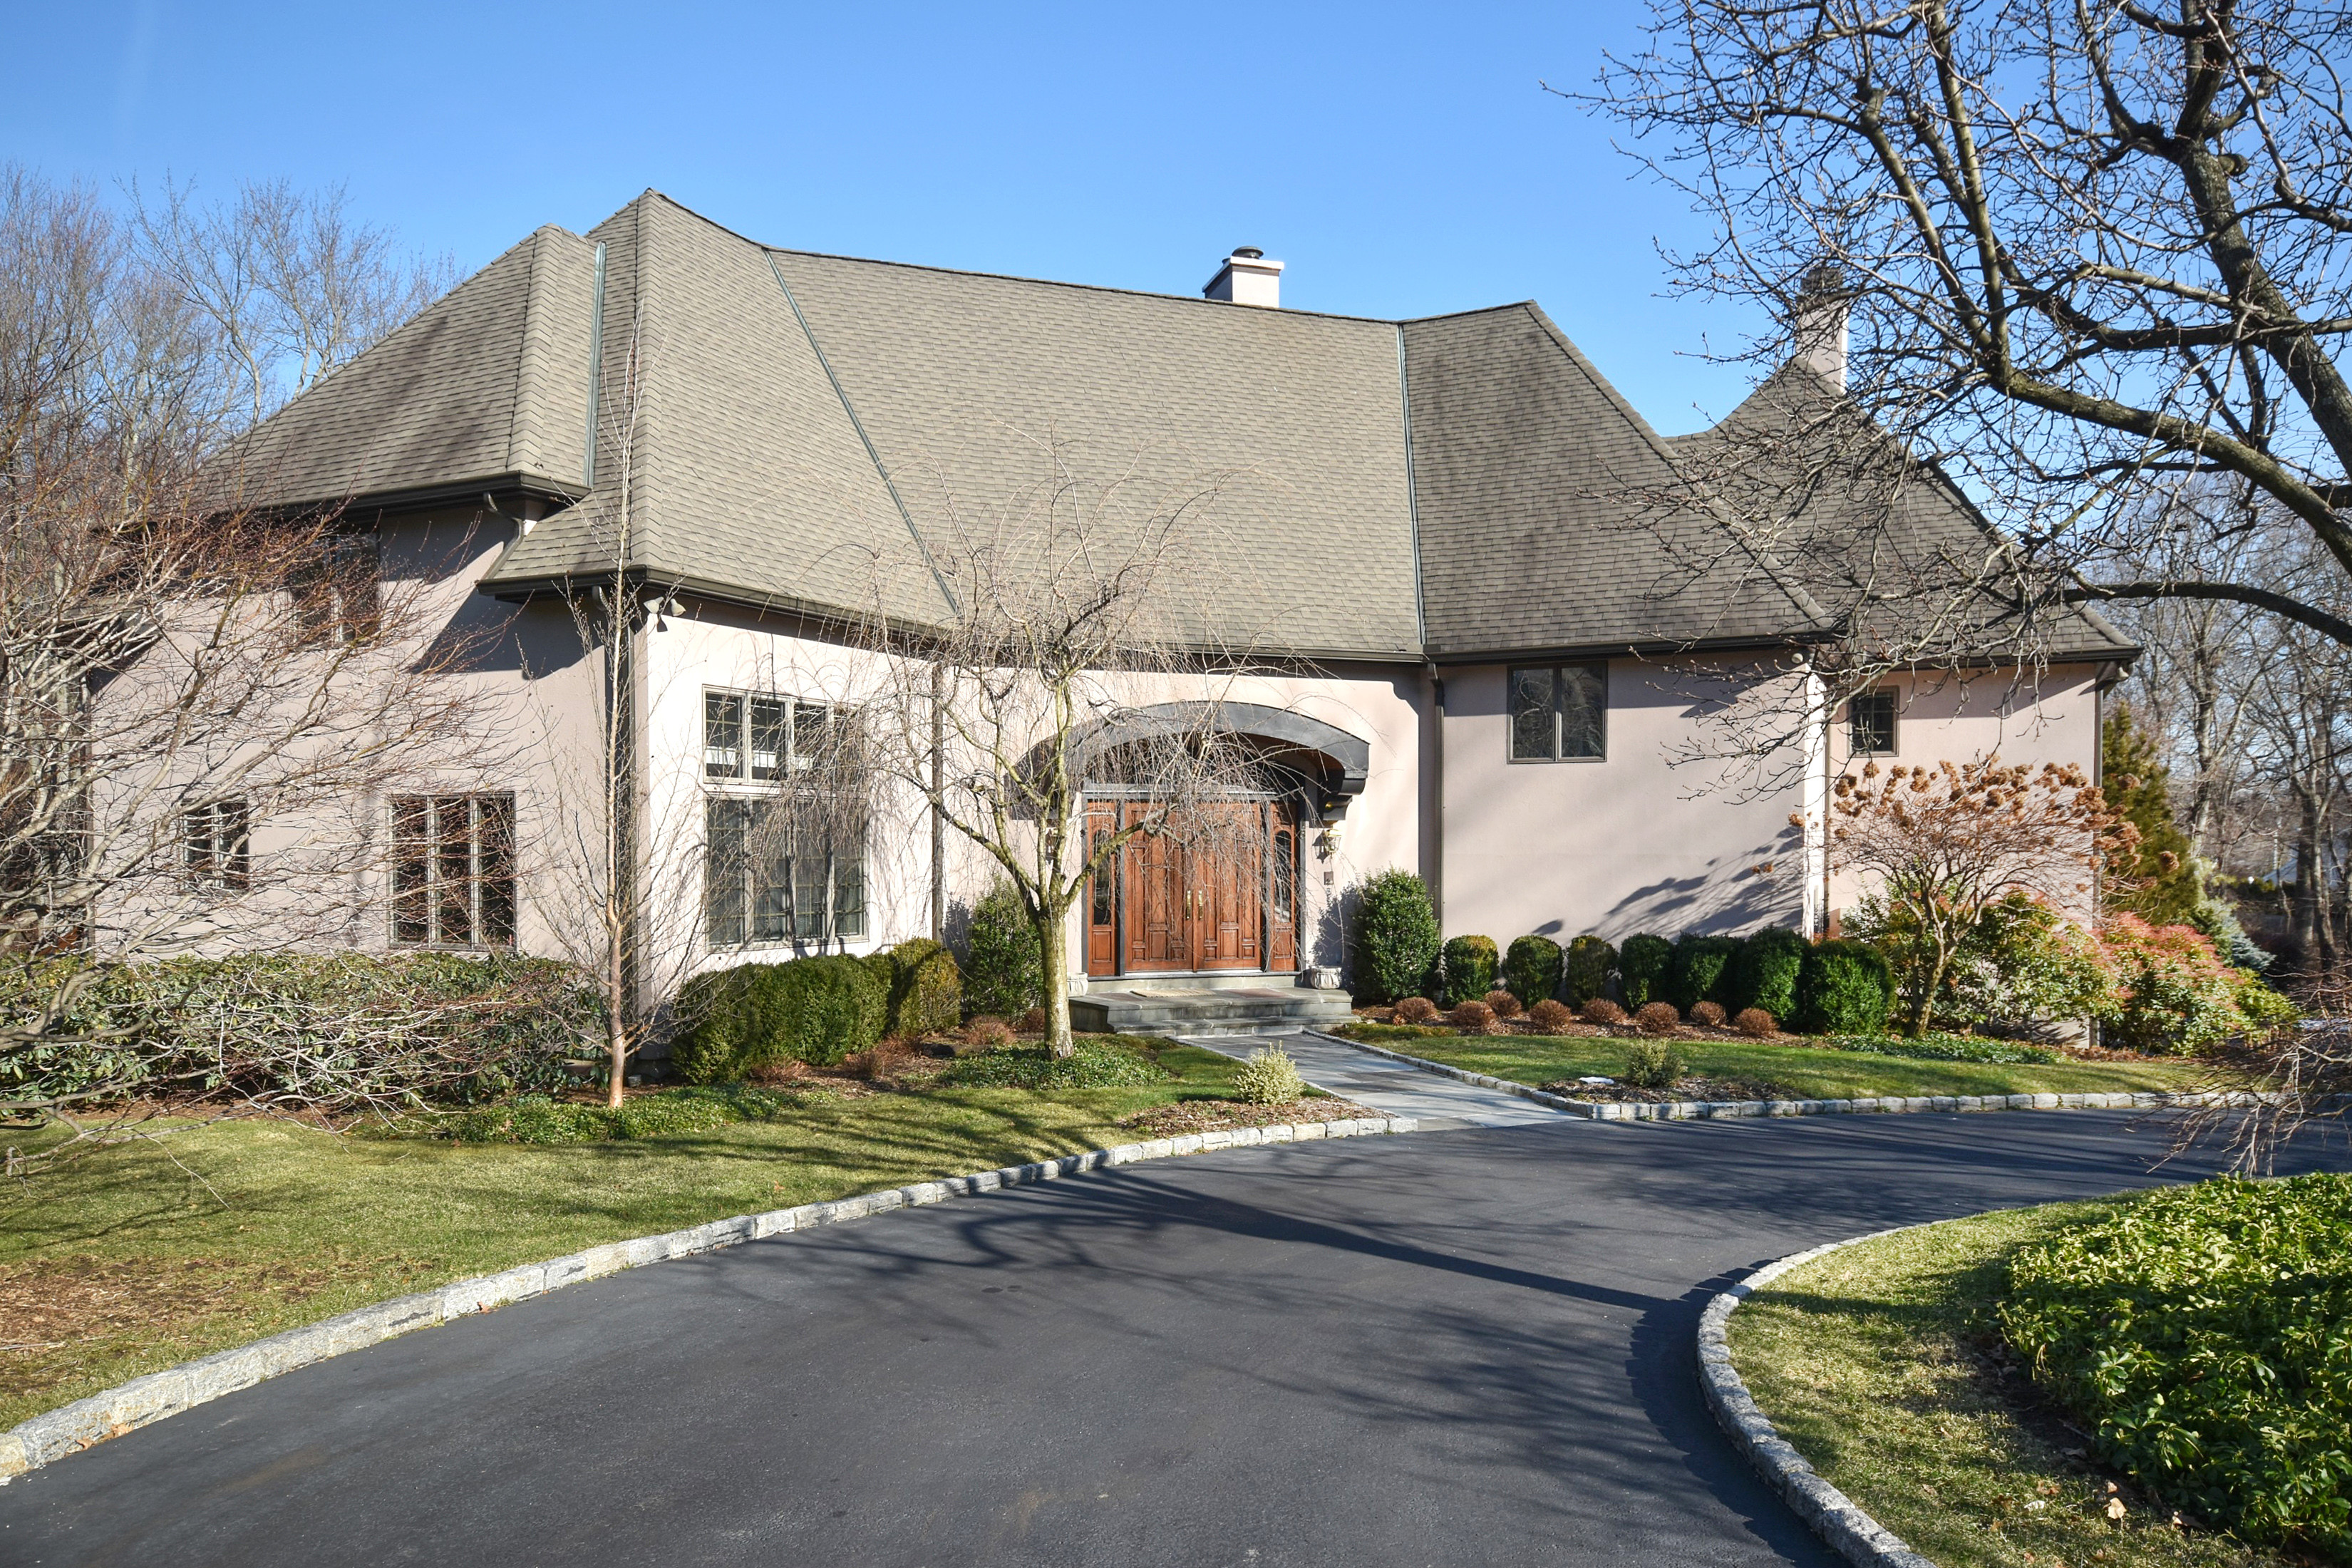 Single Family Home for Sale at Private & Tranquil Yet Convenient To Town & Train 15 Bates Farm Lane Darien, Connecticut, 06820 United States